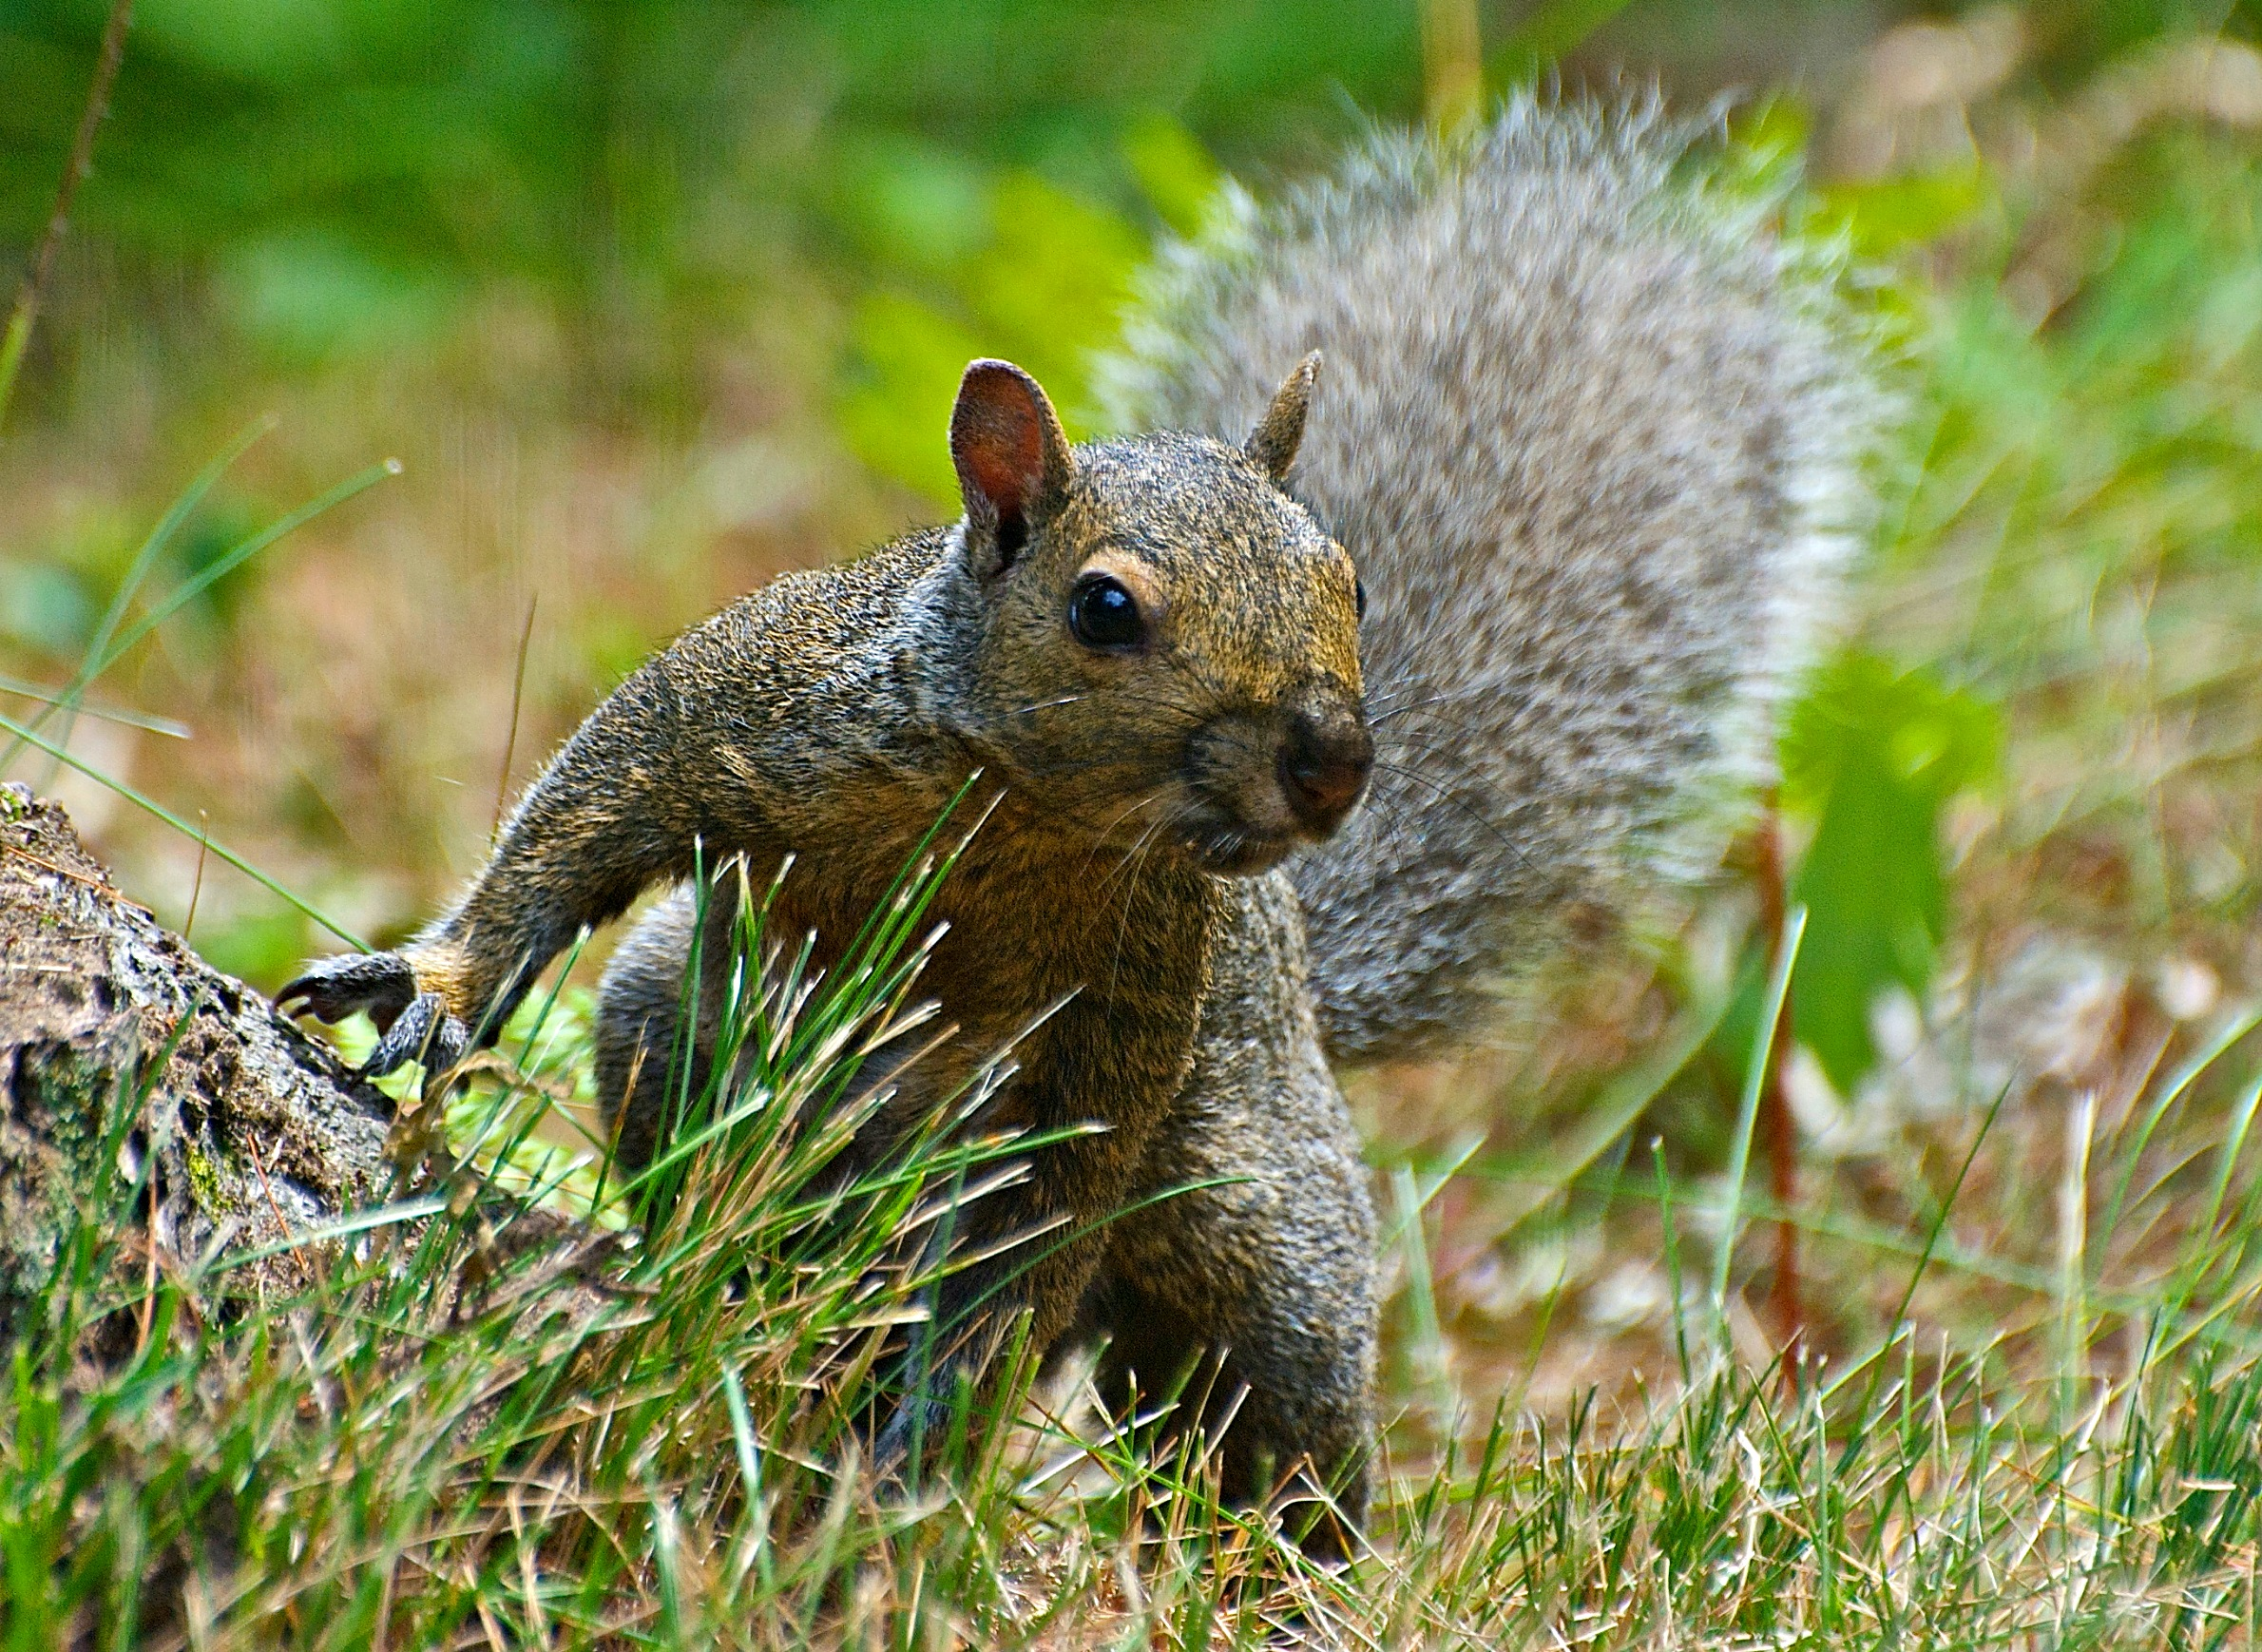 Small Mammals And Birds Are Important Accomplices In